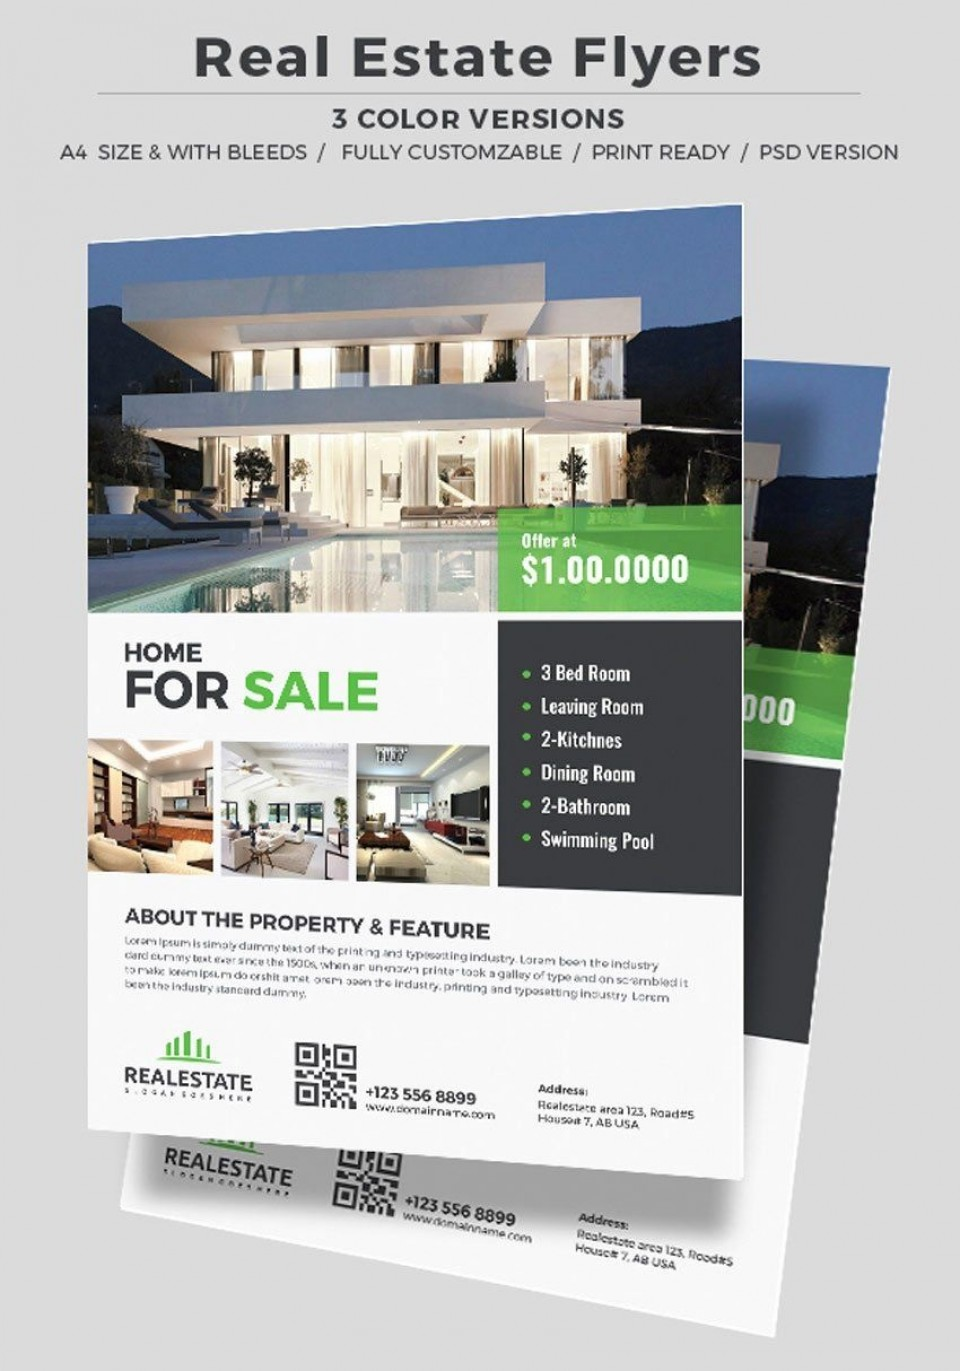 002 Unforgettable Real Estate Advertising Template Photo  Newspaper Ad Instagram Craigslist960